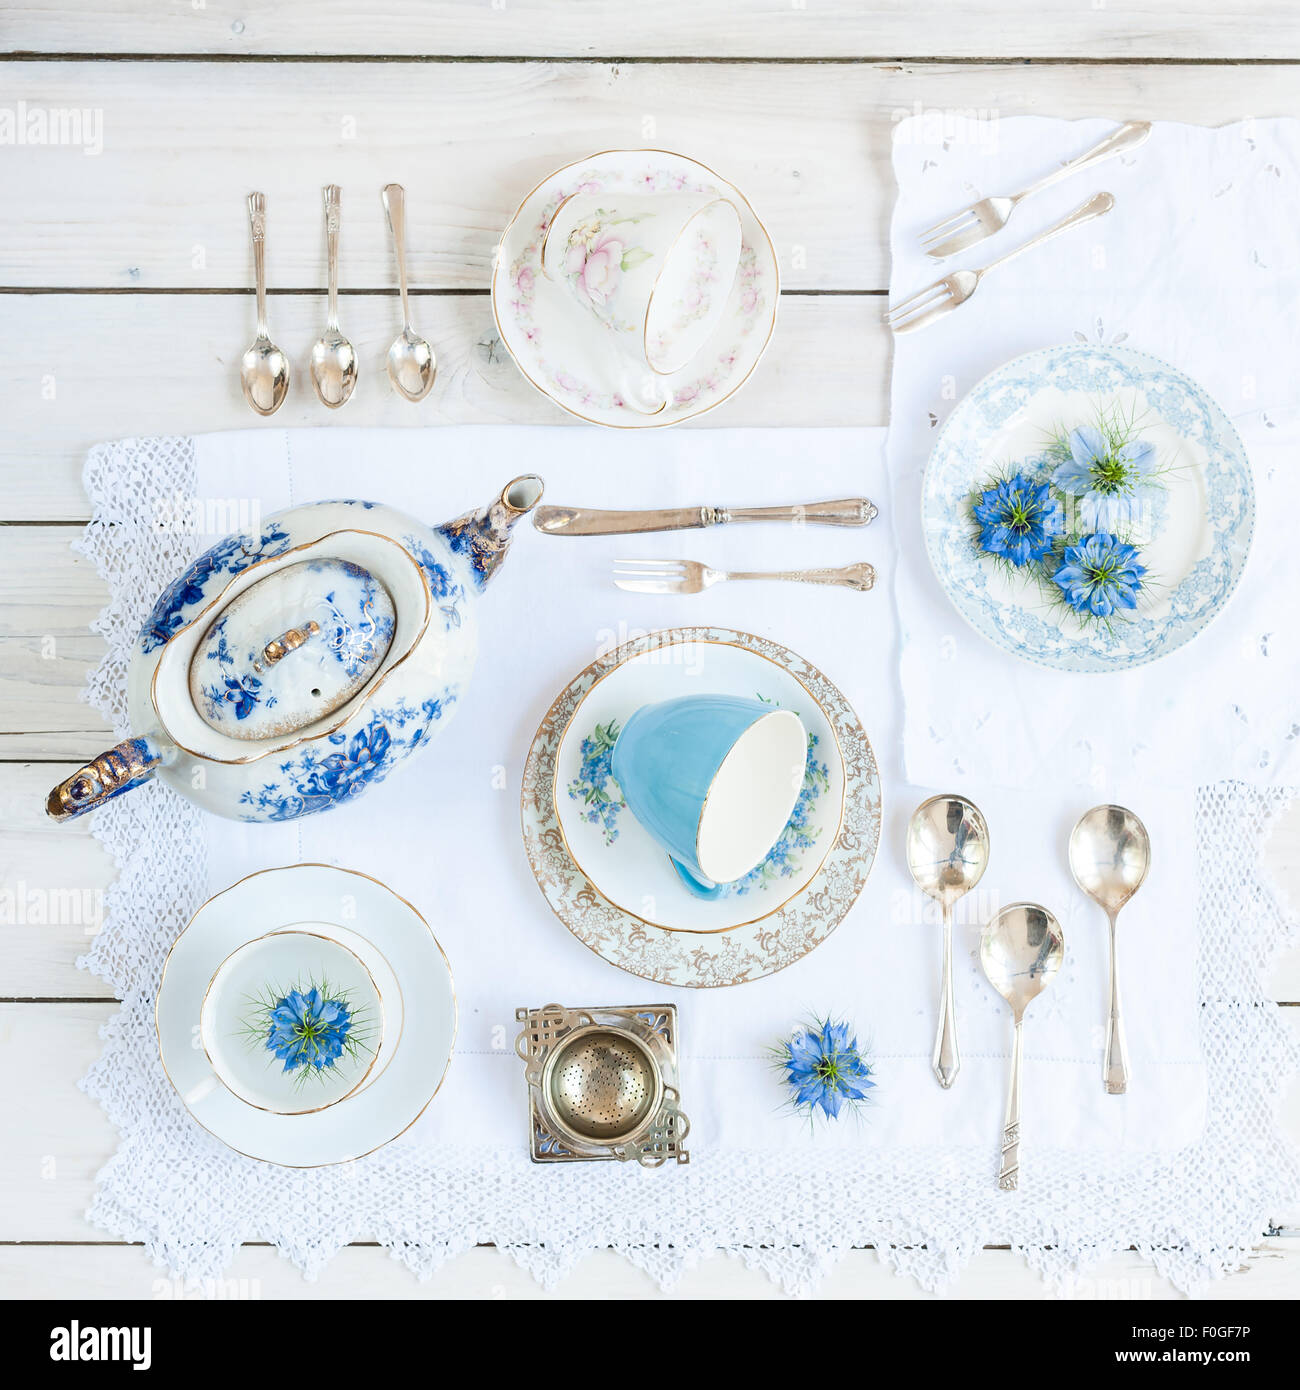 a collection of vintage teaware - Stock Image